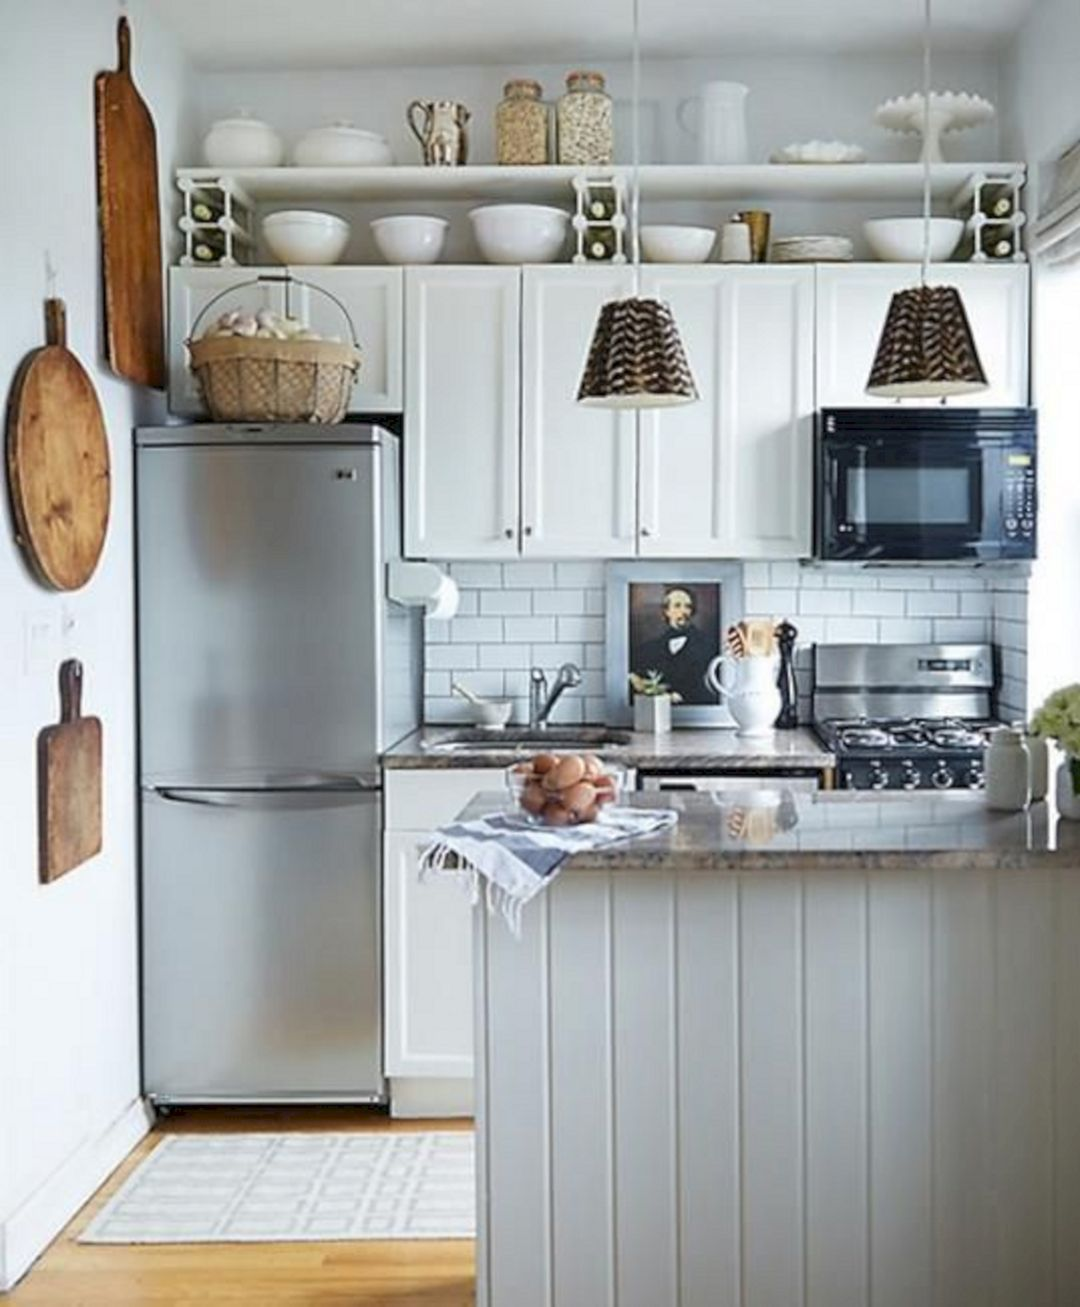 Awesome Tiny Kitchen Design For Your Beautiful Tiny House 170 | Tiny ...